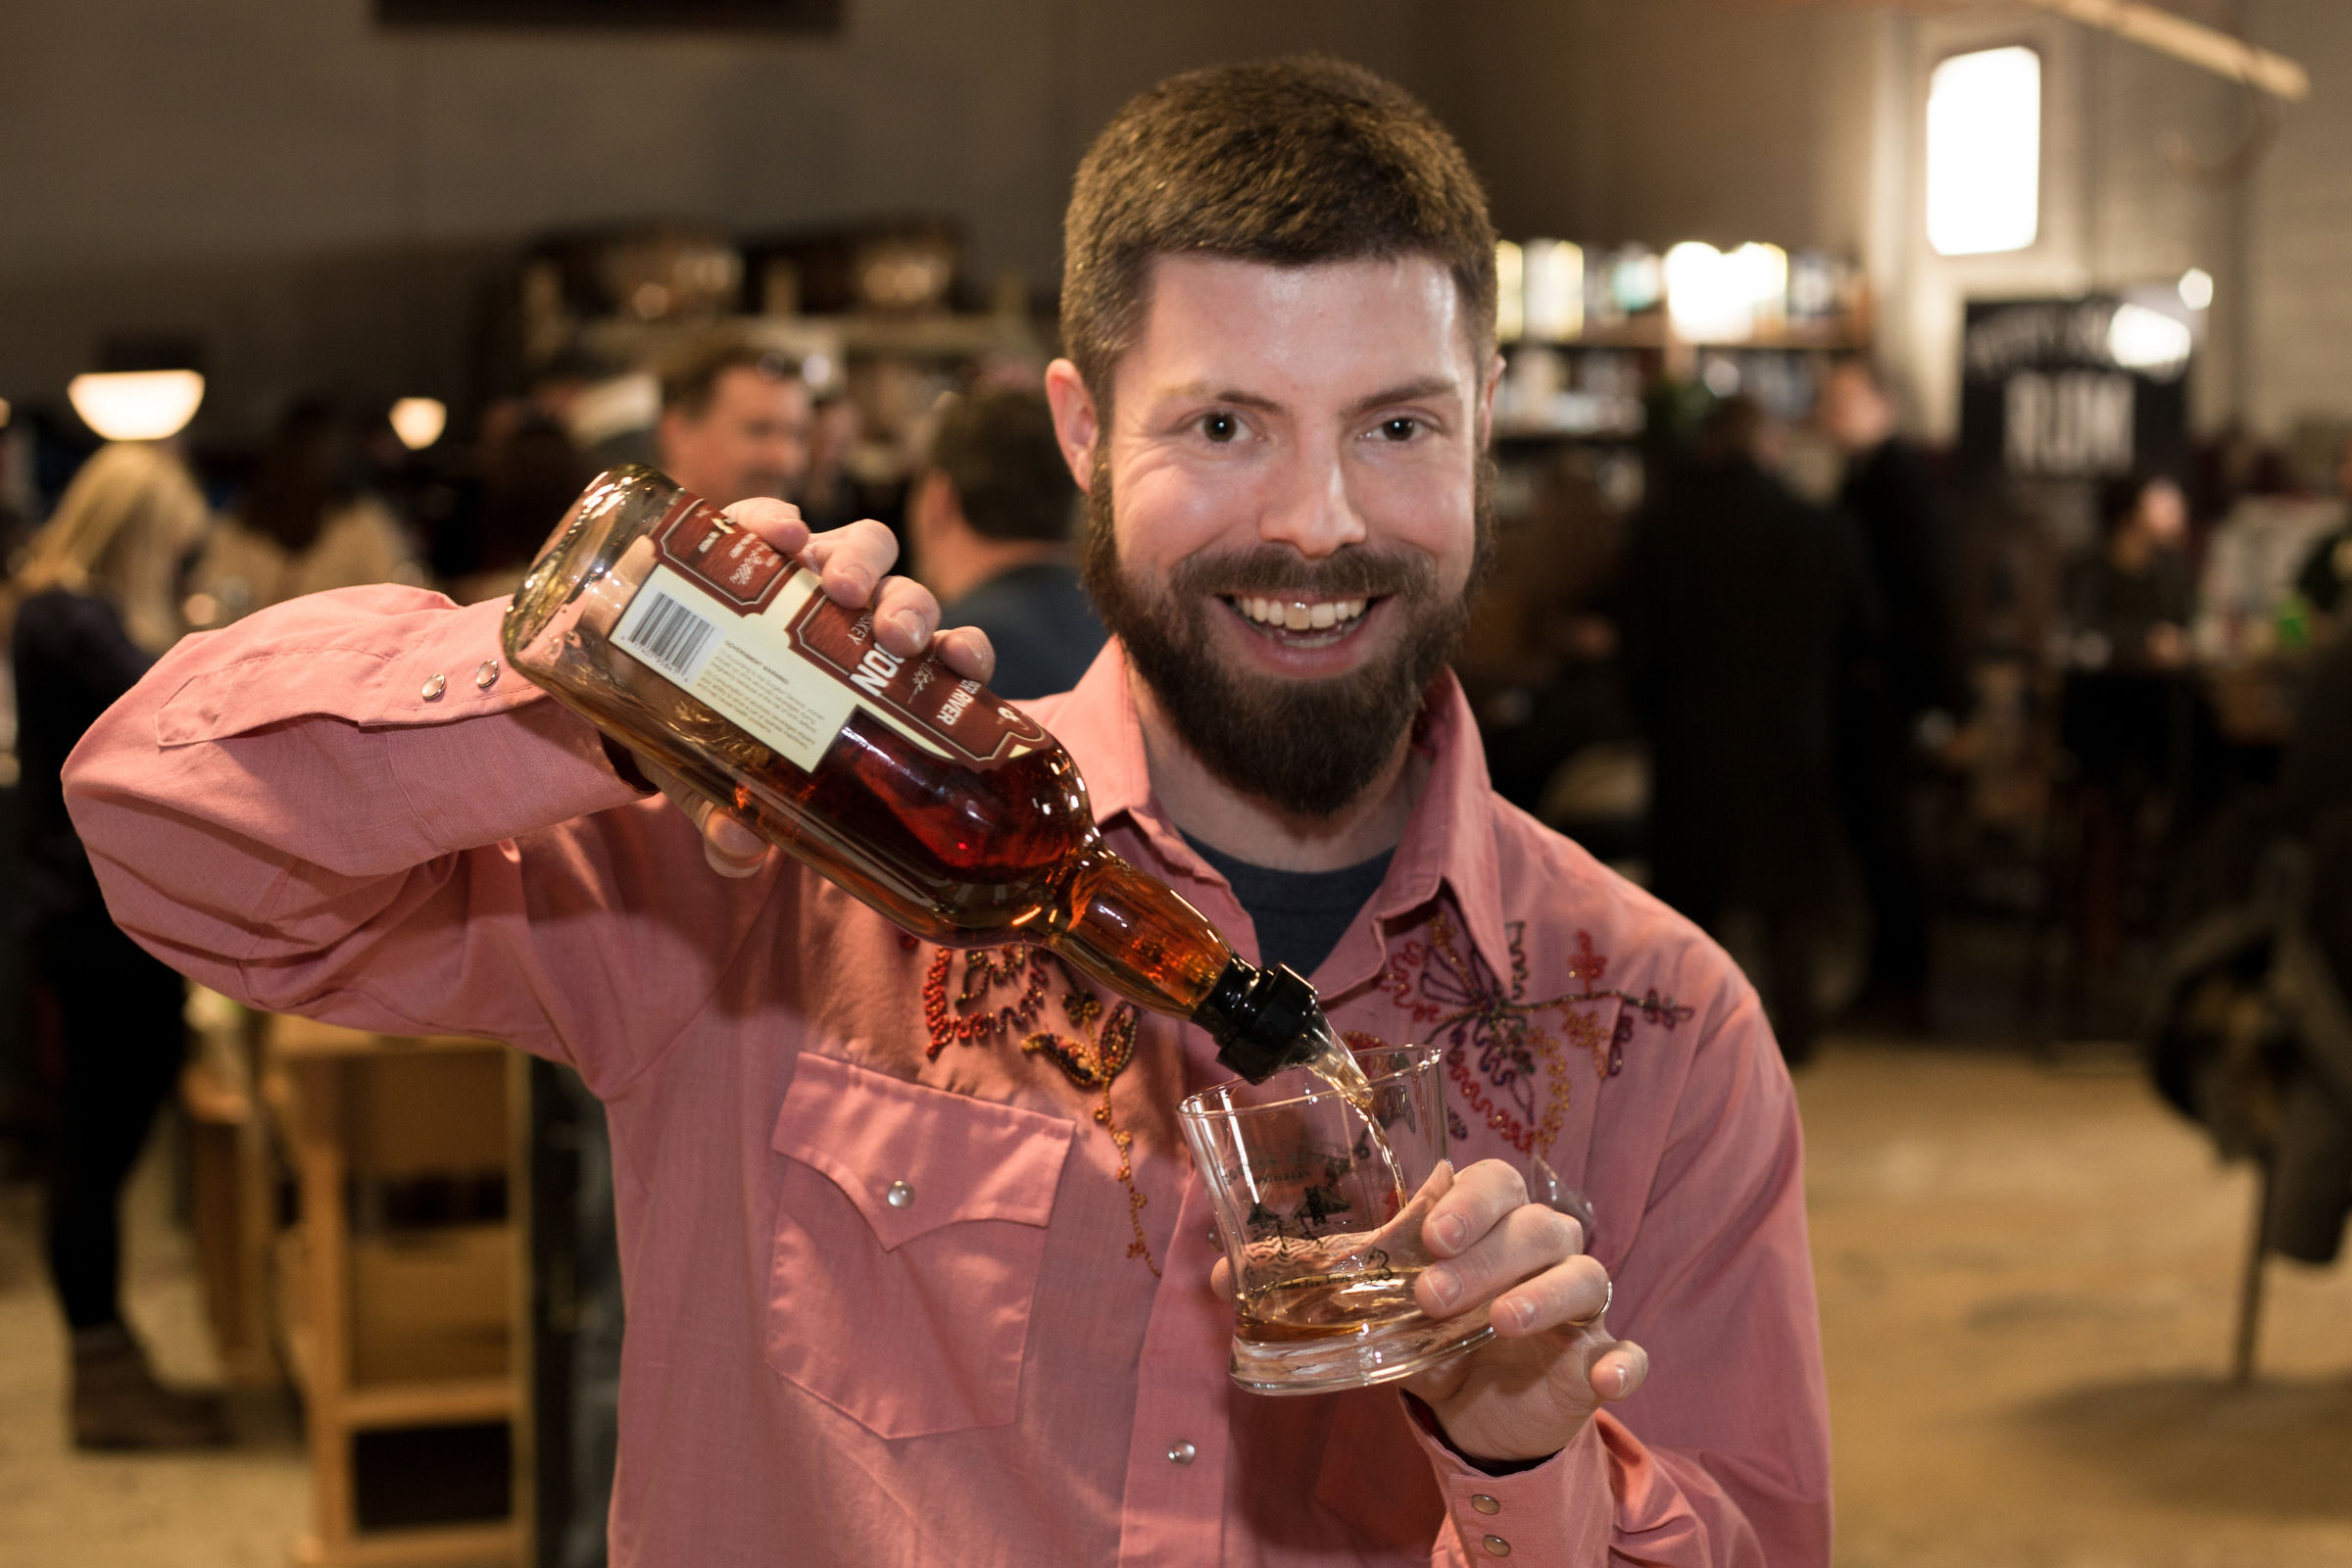 Cooper River Distillers' Chief Distiller James Yoakum pouring a sample of Cooper River Bourbon at their Bourbon Release Party. ()